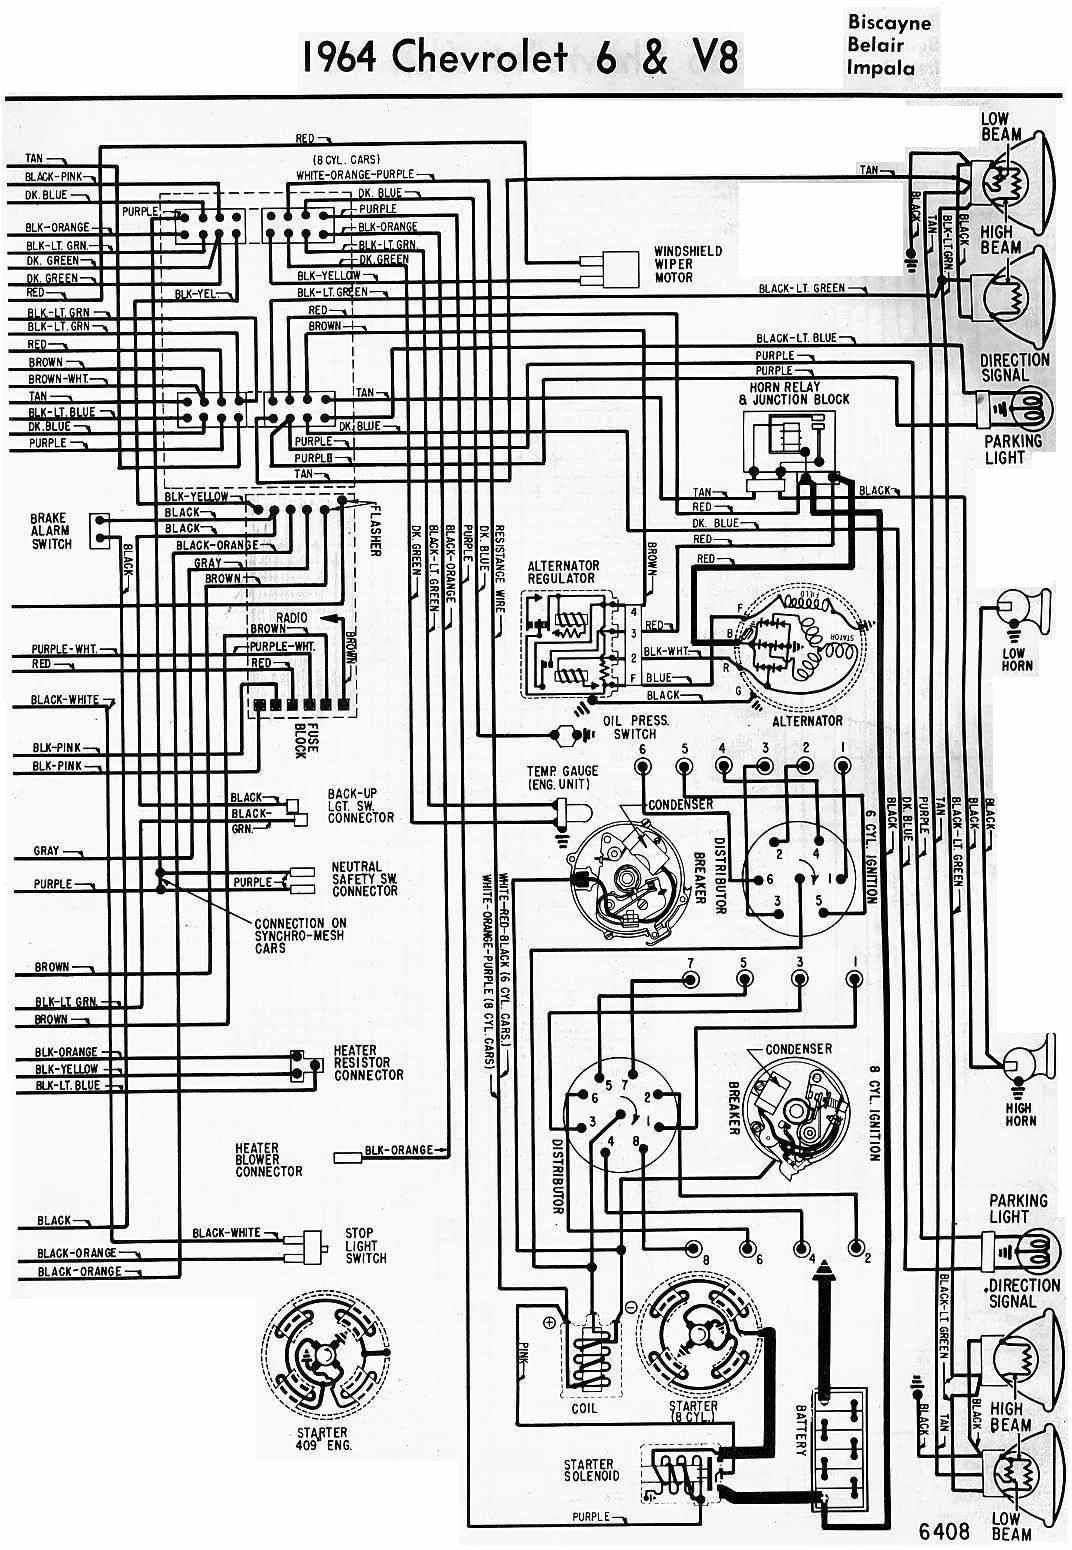 1964 chevy nova wiring diagram ge dishwasher parts electrical of chevrolet 6 and v8 all